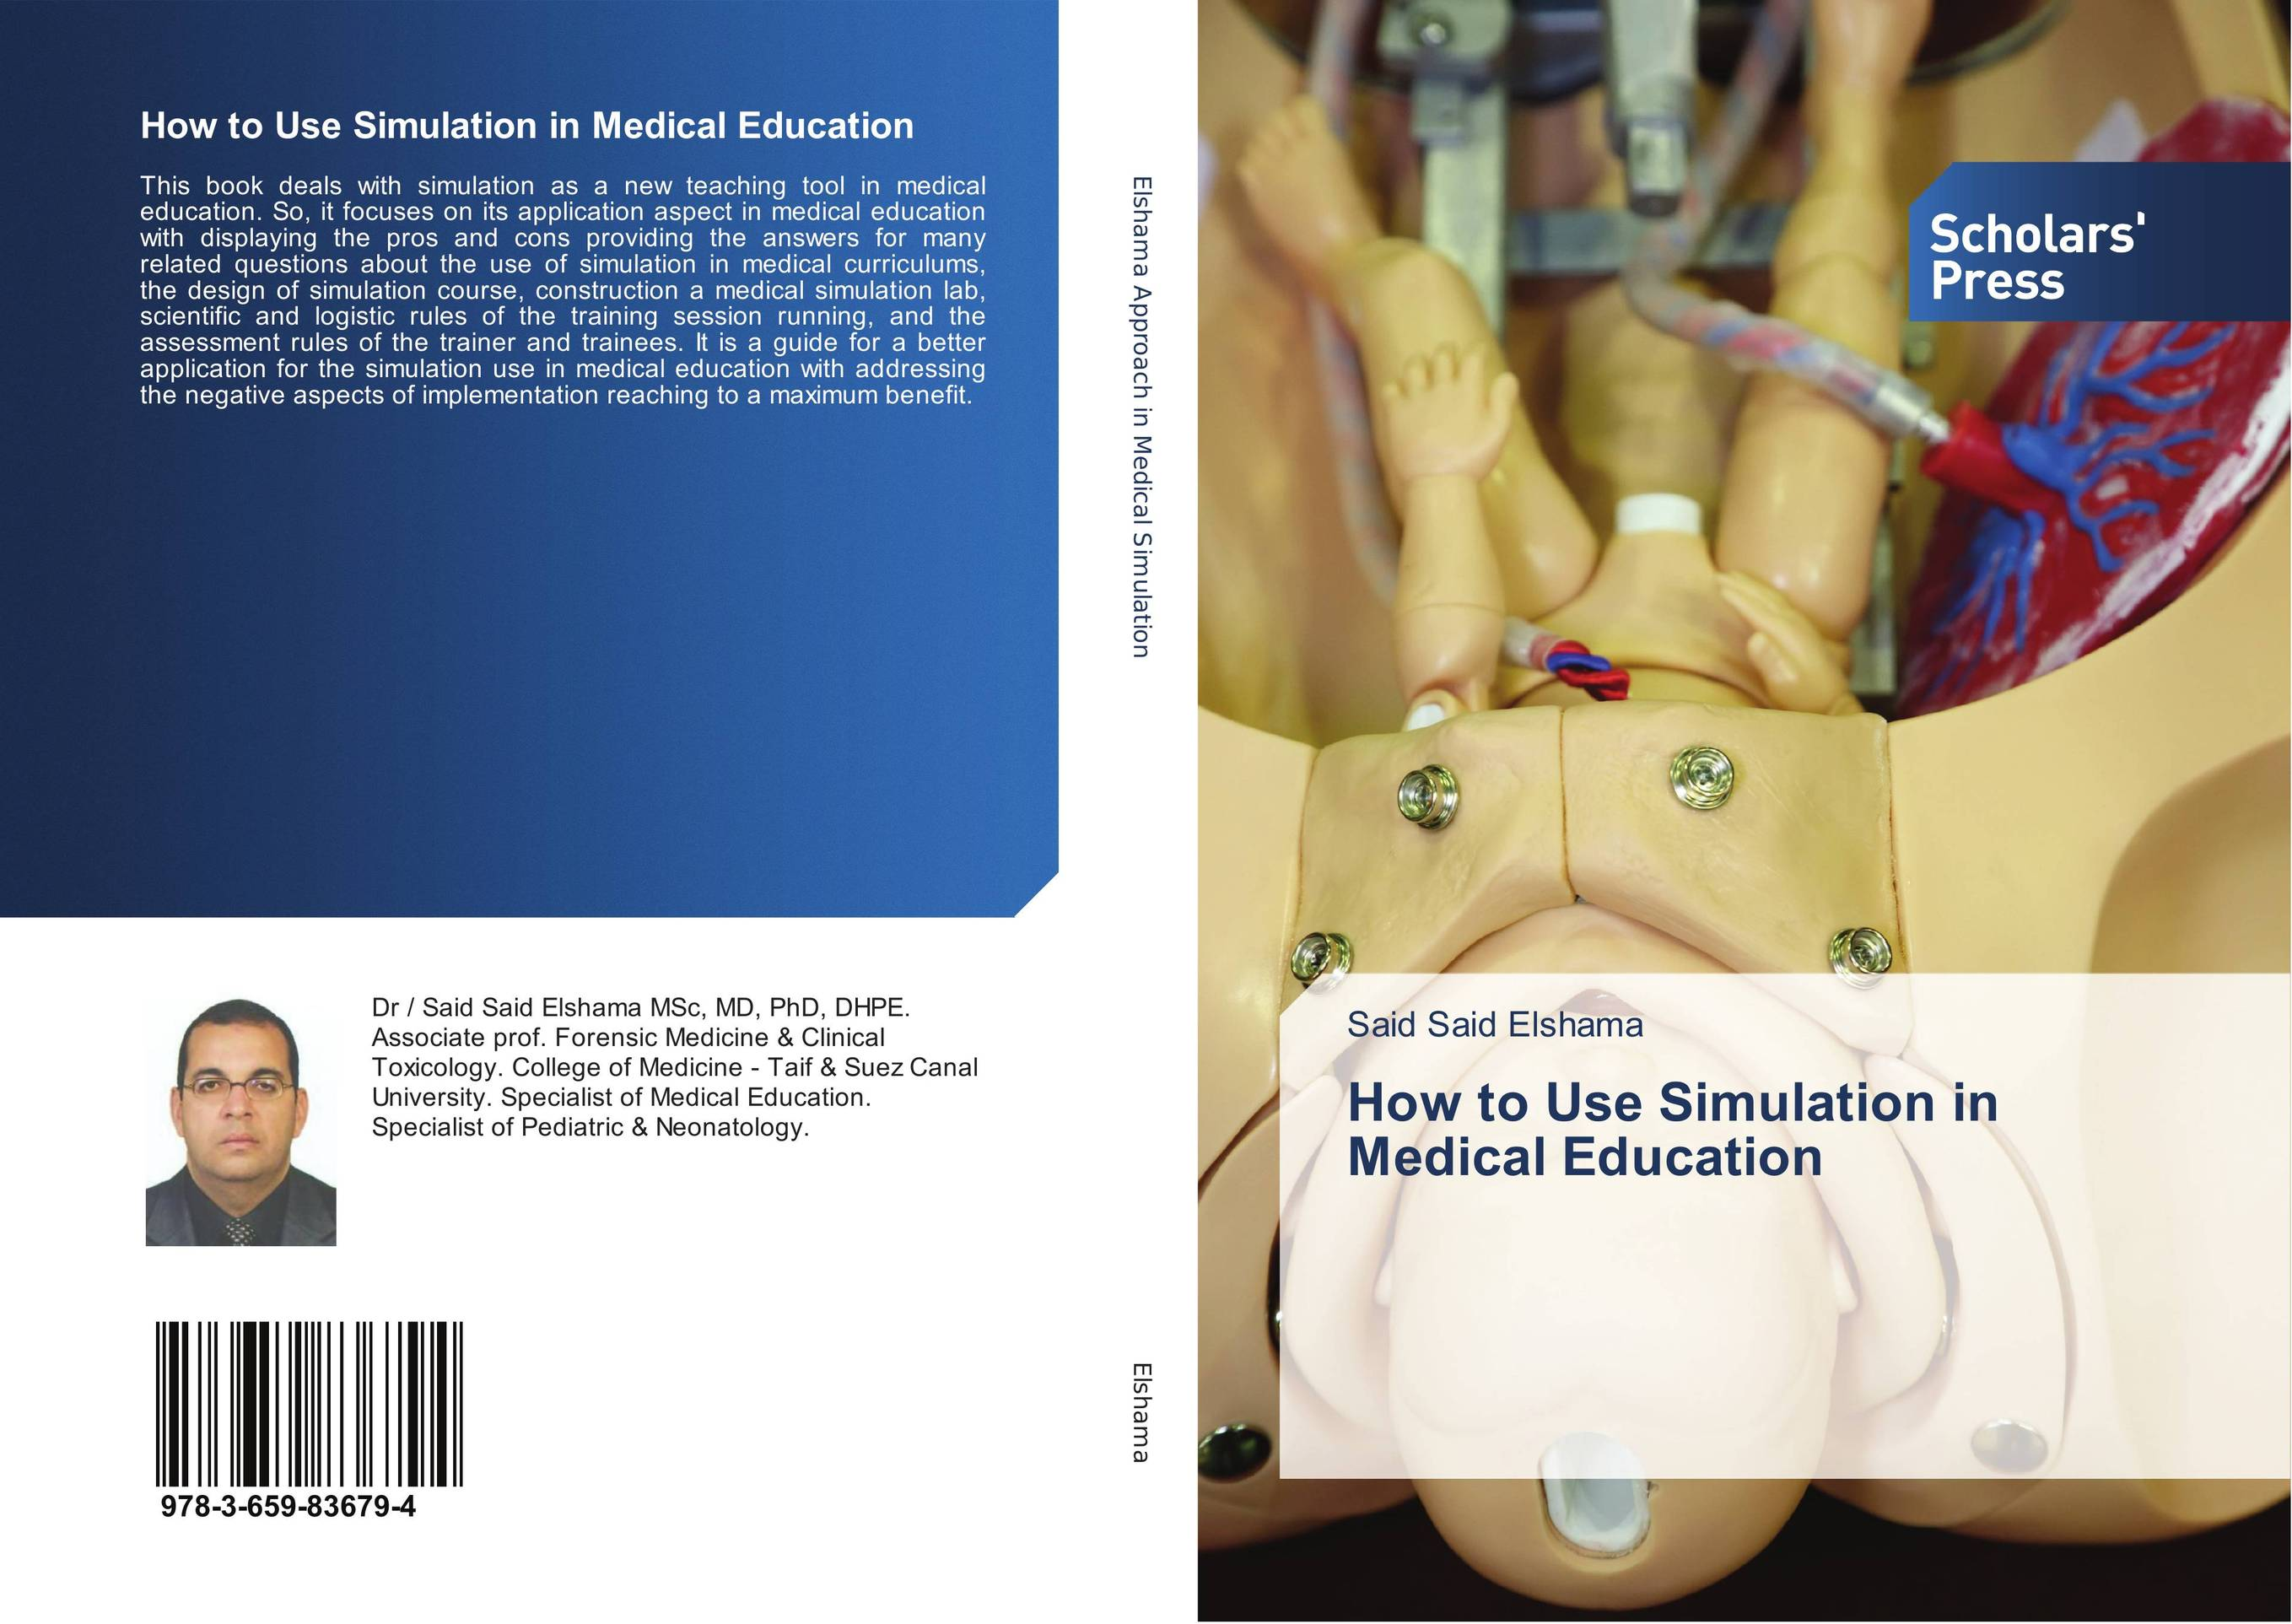 How to Use Simulation in Medical Education